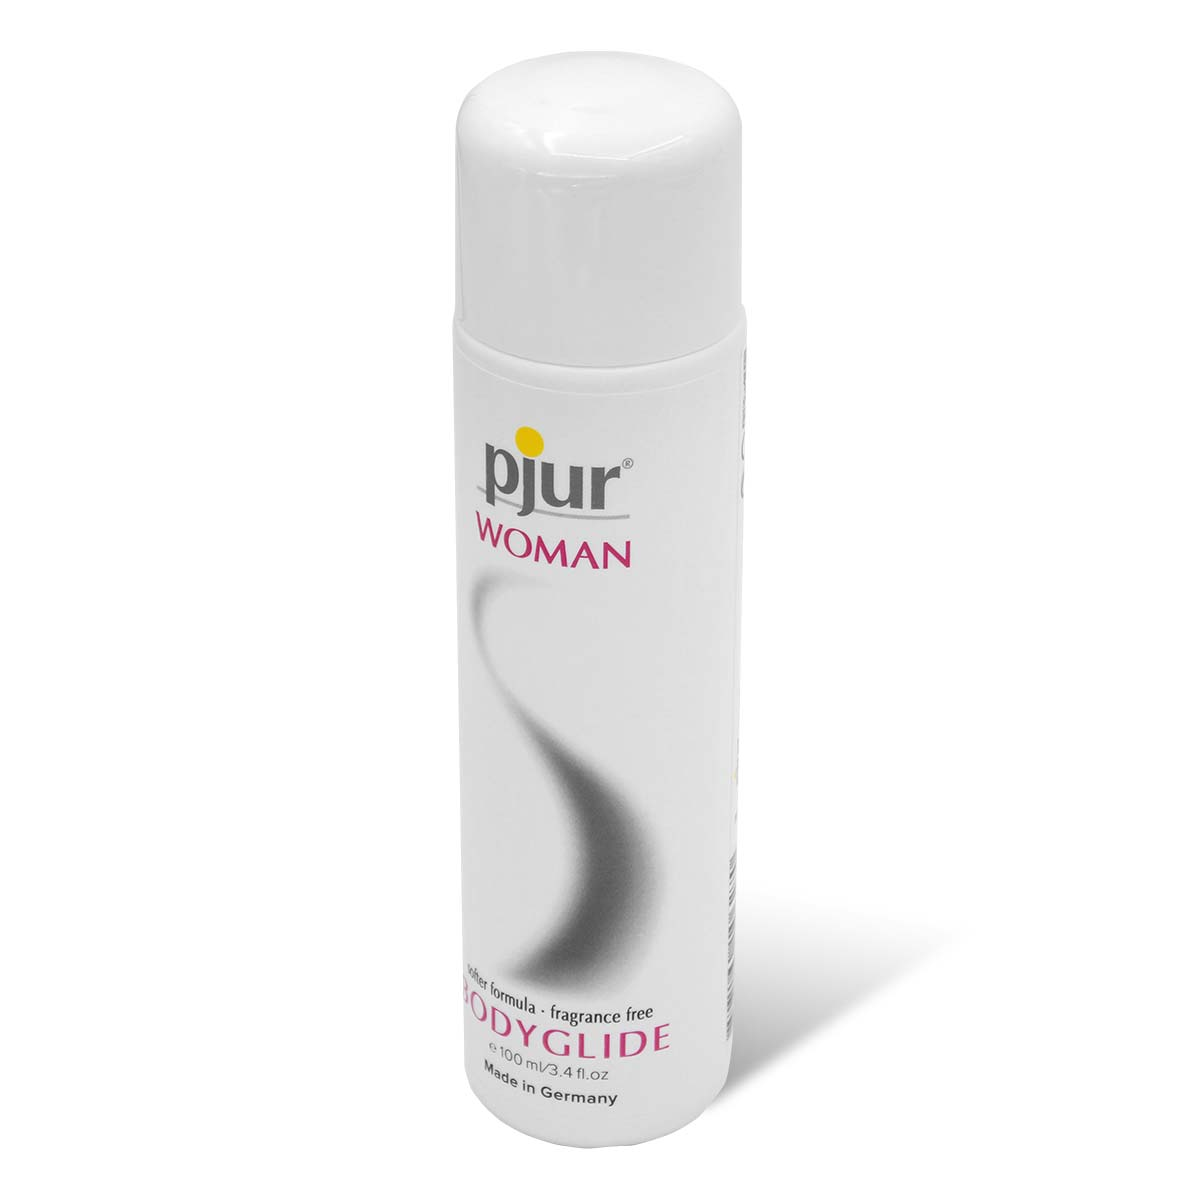 pjur WOMAN 100ml Silicone-based Lubricant